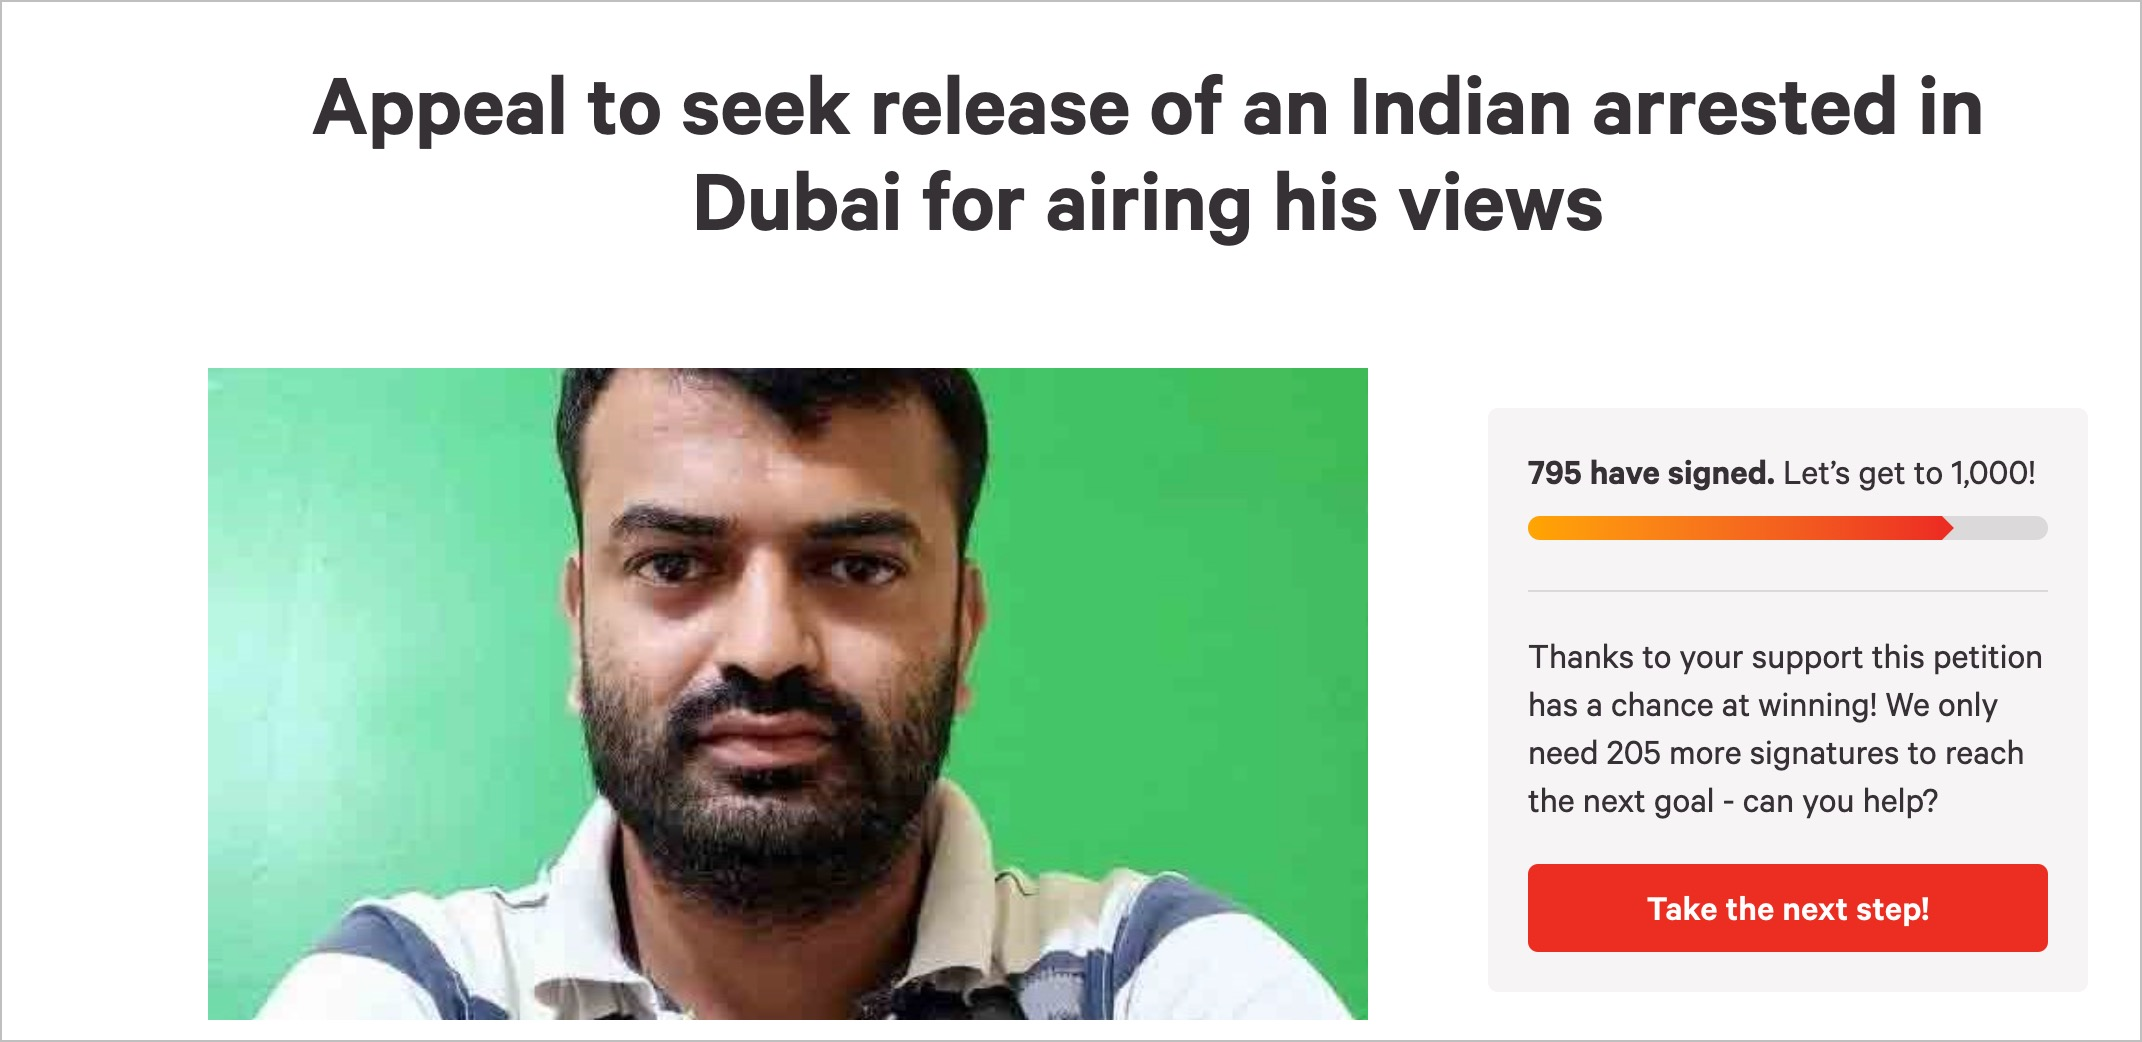 Appeal to seek release of an Indian arrested in Dubai for airing his views